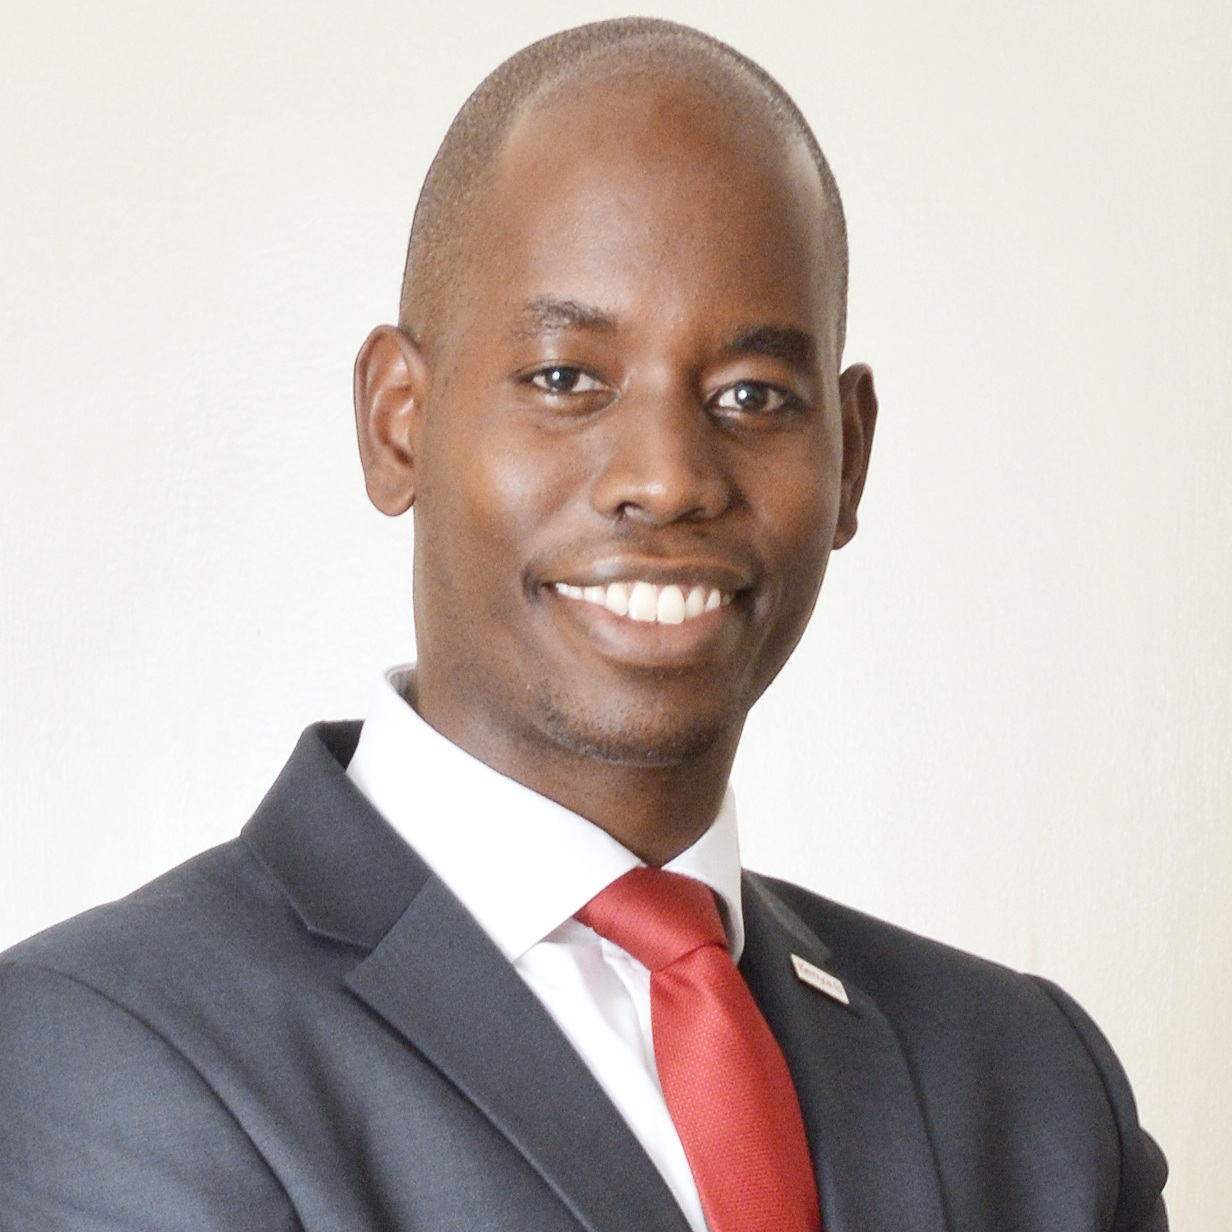 PAUL MUTHAURA - Chief Executive Officer, The Capital Markets Authority, Kenya